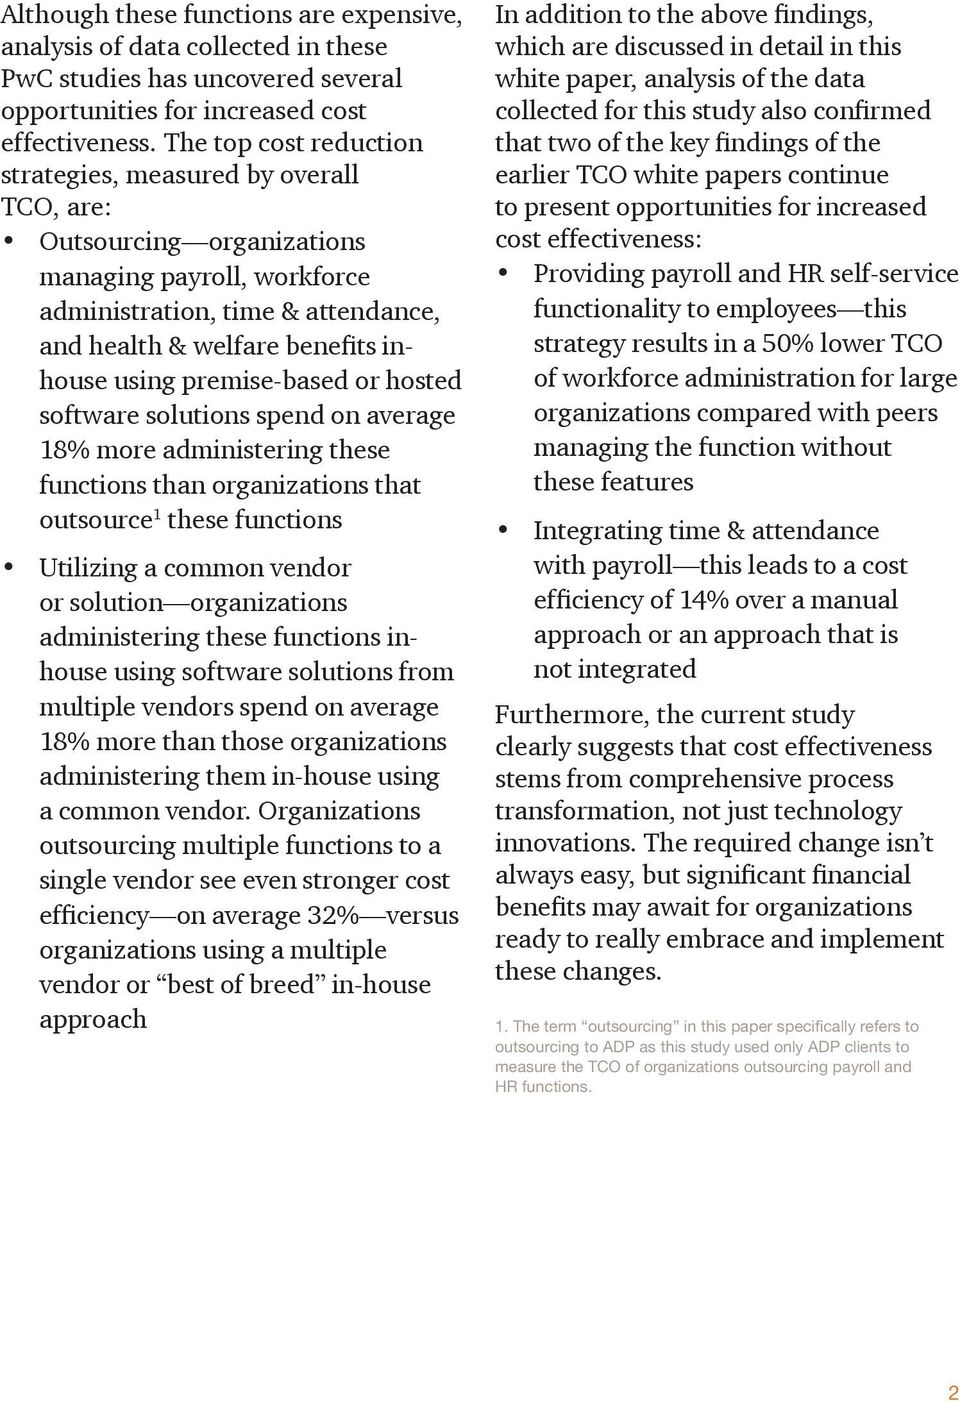 premise-based or hosted software solutions spend on average 18% more administering these functions than organizations that outsource 1 these functions Utilizing a common vendor or solution